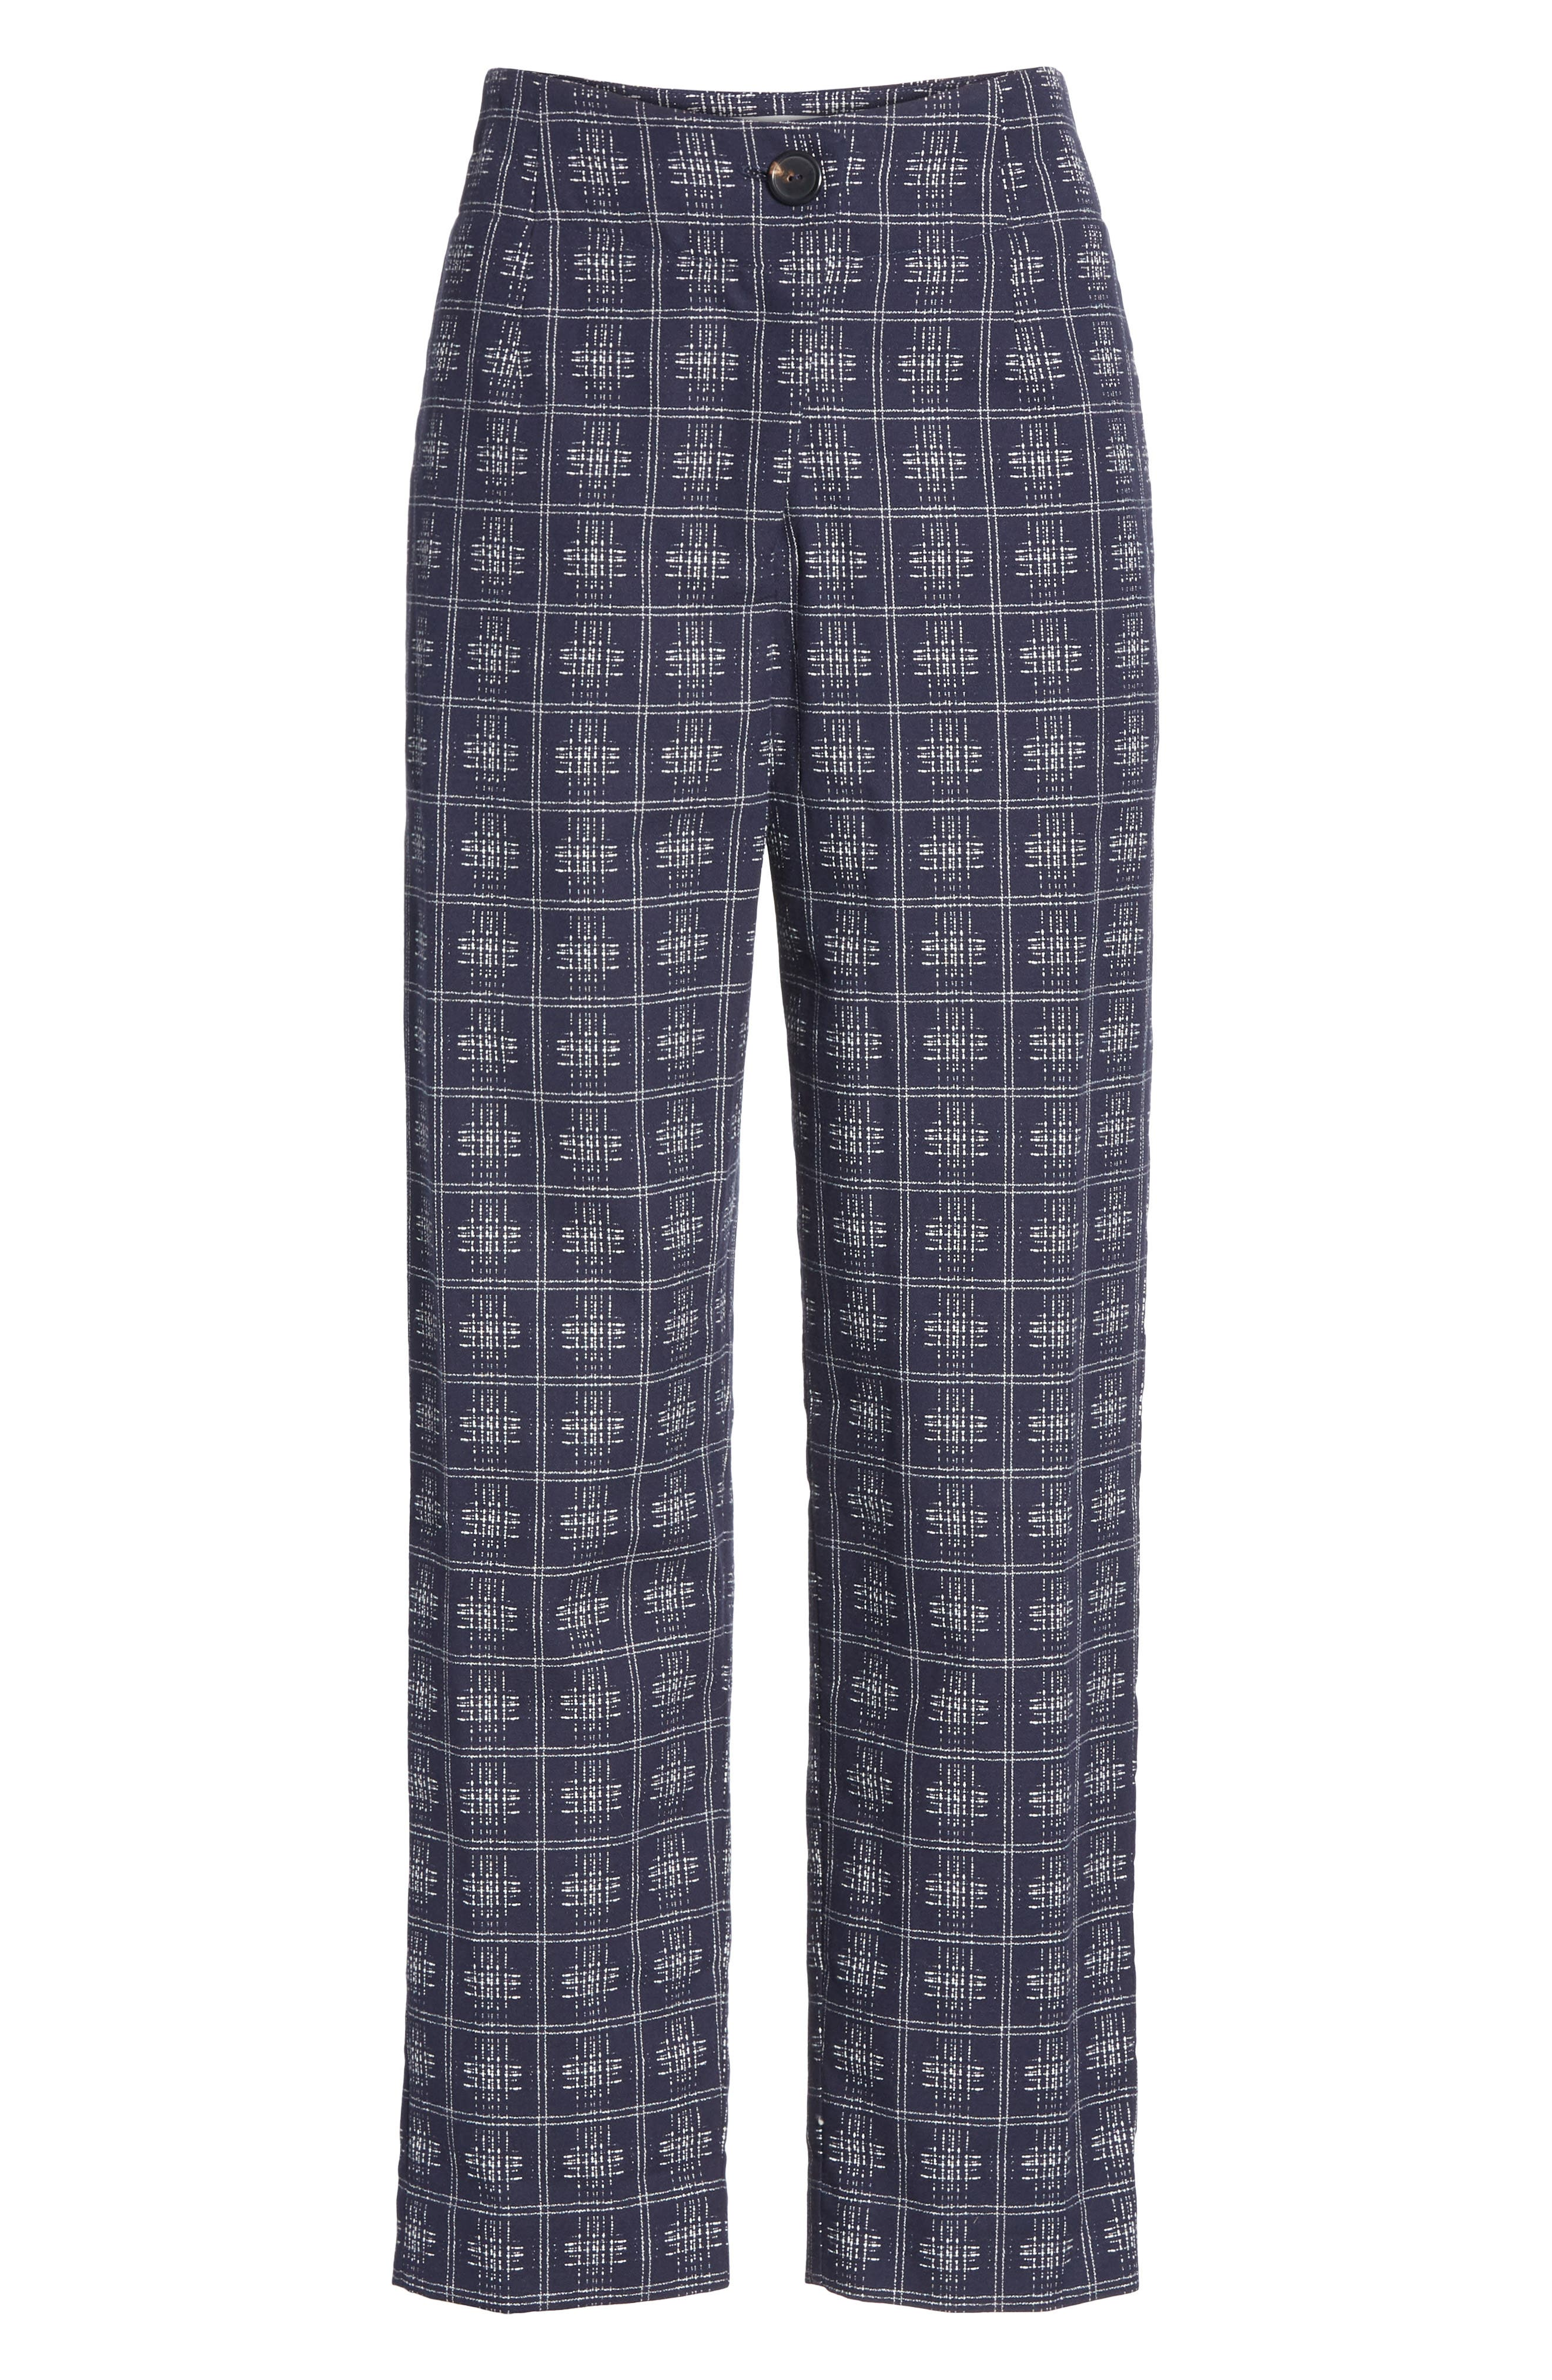 PALMER/HARDING, Fractured Trousers, Alternate thumbnail 6, color, NAVY CROSSHATCH CHECK